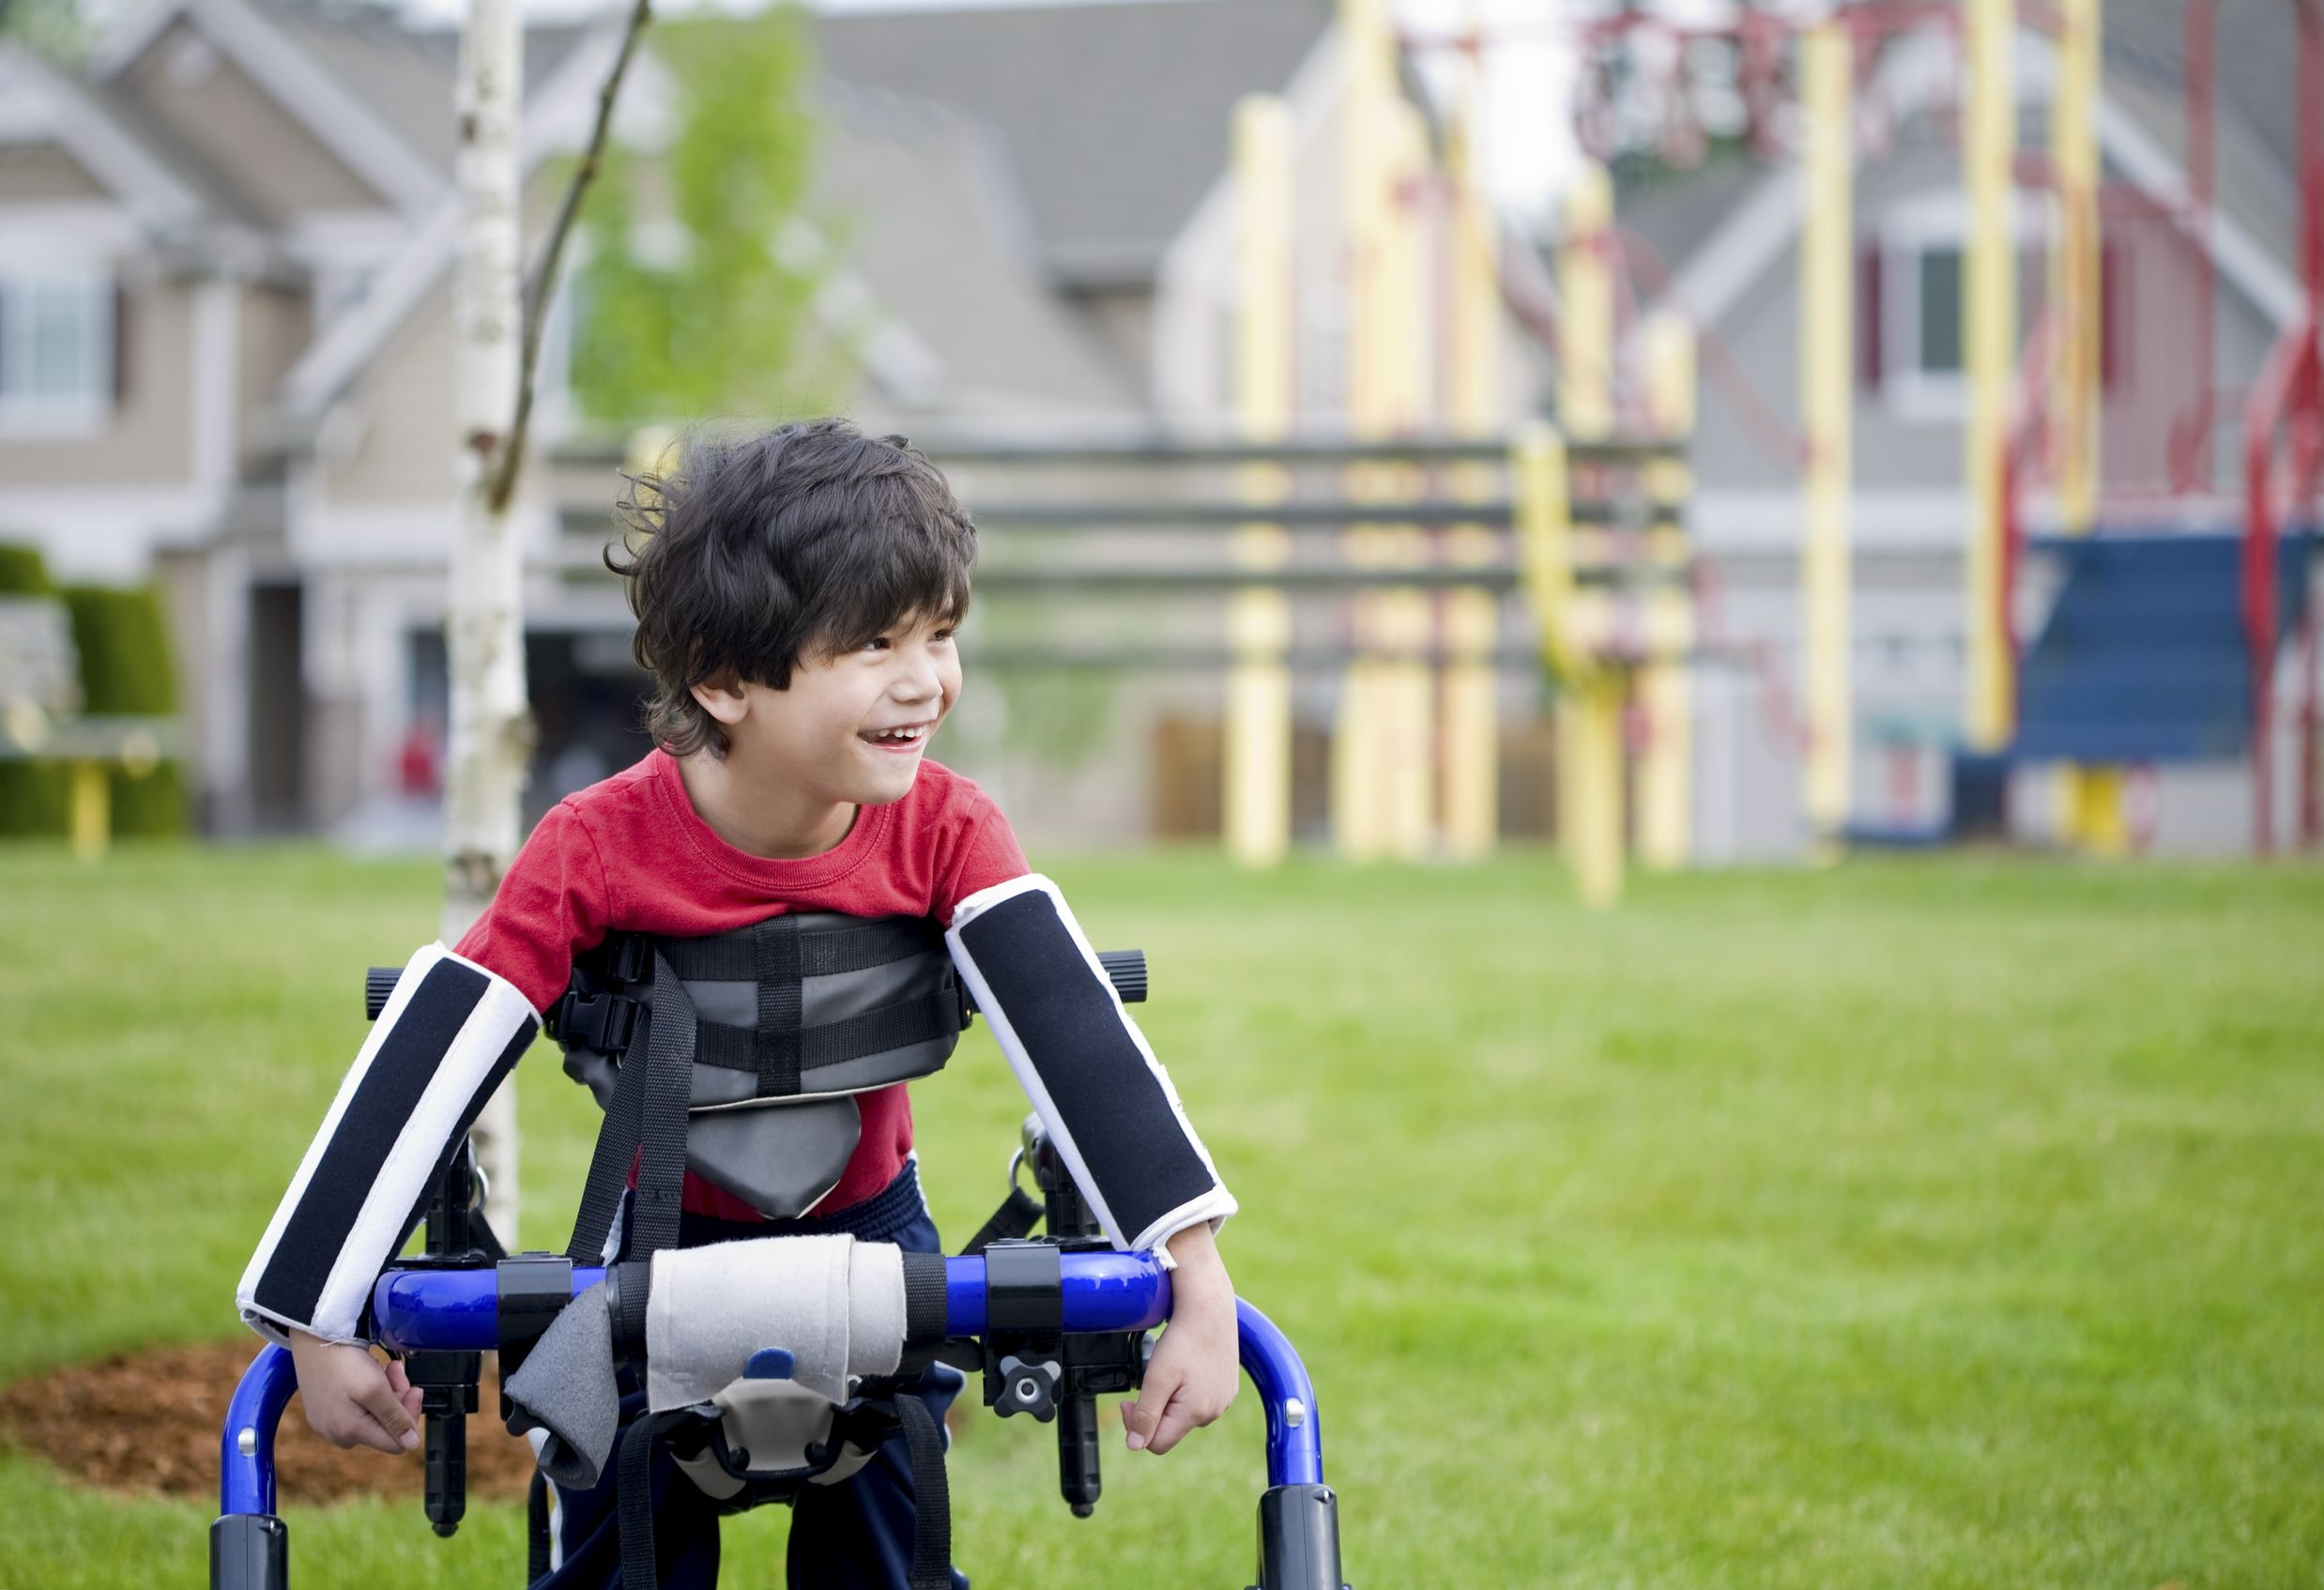 Fostering Children with Disabilities | UK Fostering